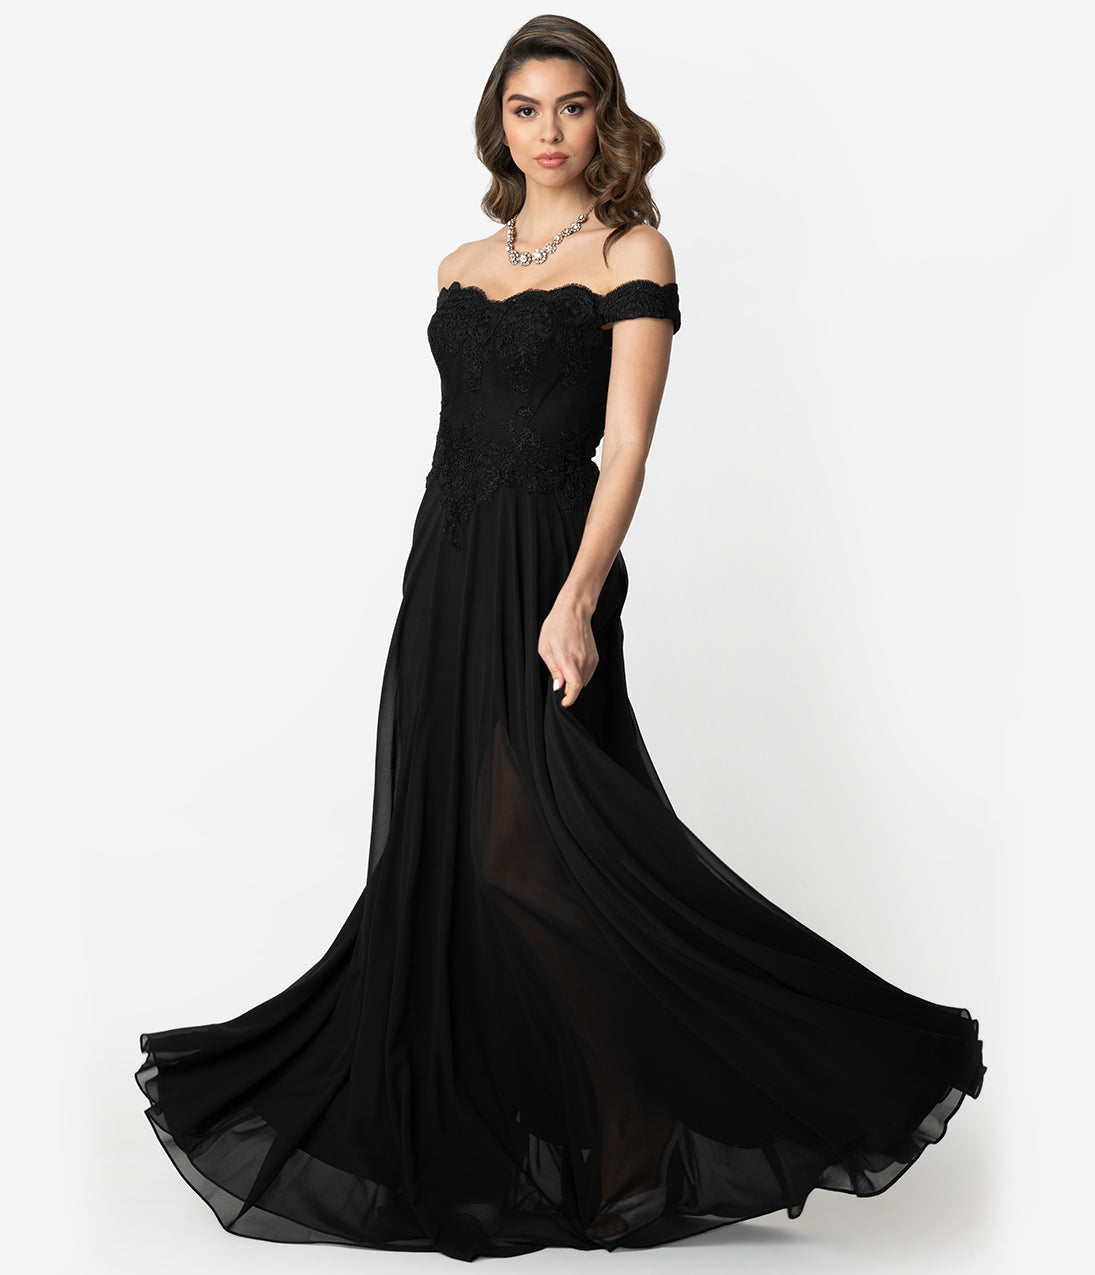 1980s Clothing, Fashion | 80s Style Clothes Black Lace Off The Shoulder Chiffon Long Gown $110.00 AT vintagedancer.com